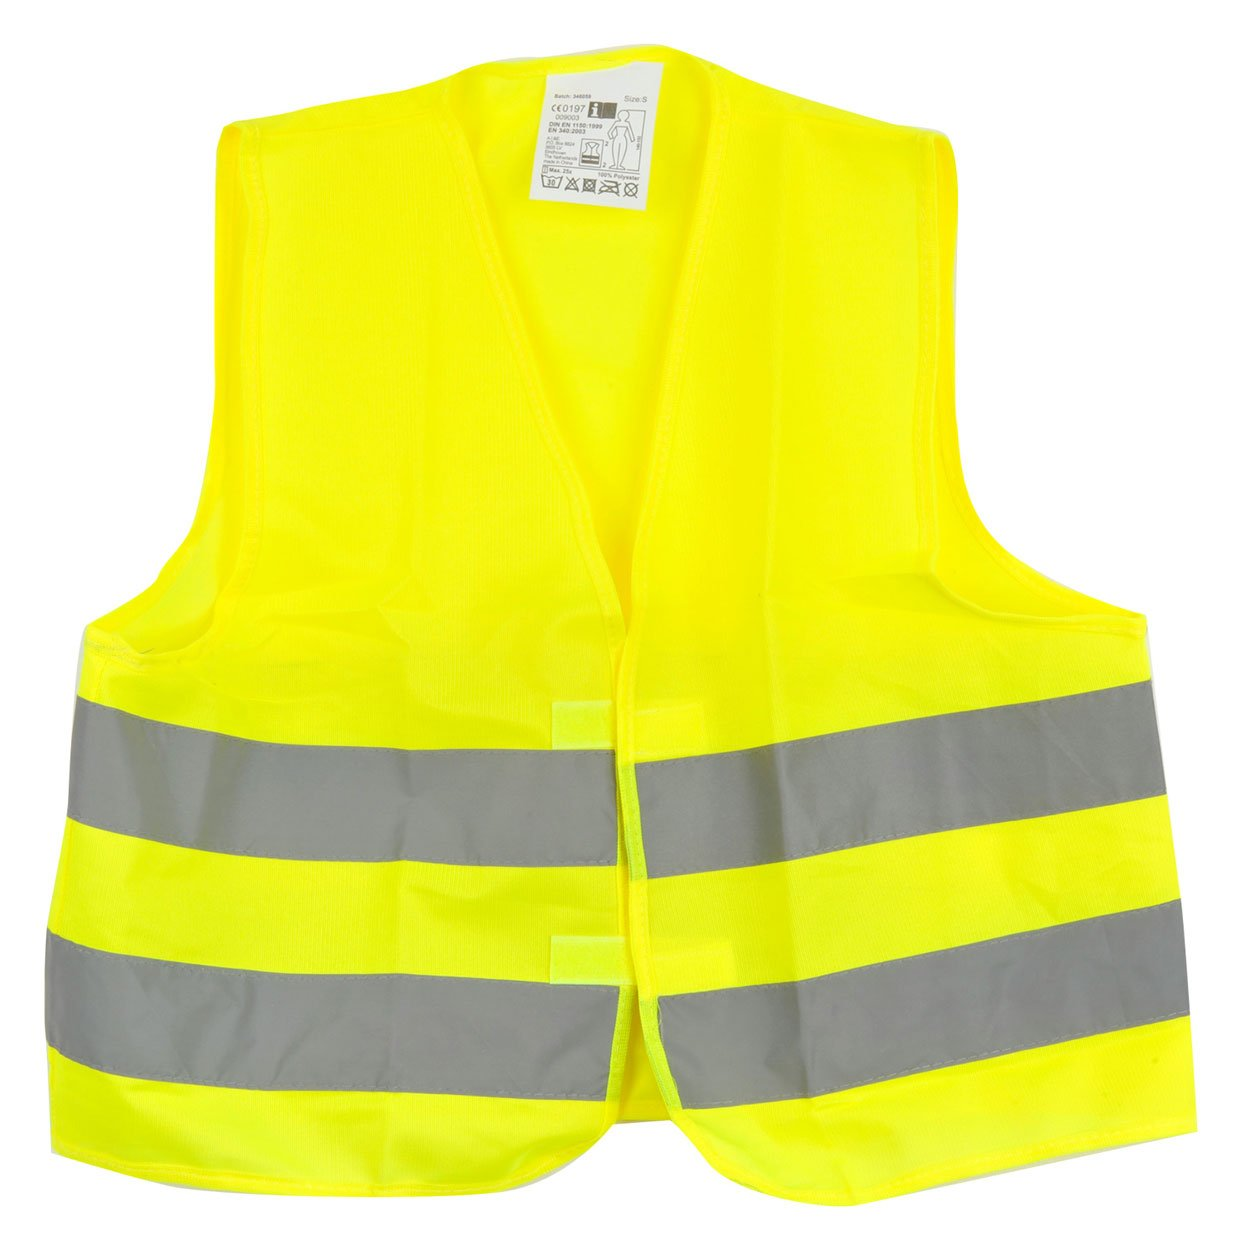 Lifetime cars 871125238117 Kids High Visibility Vest.